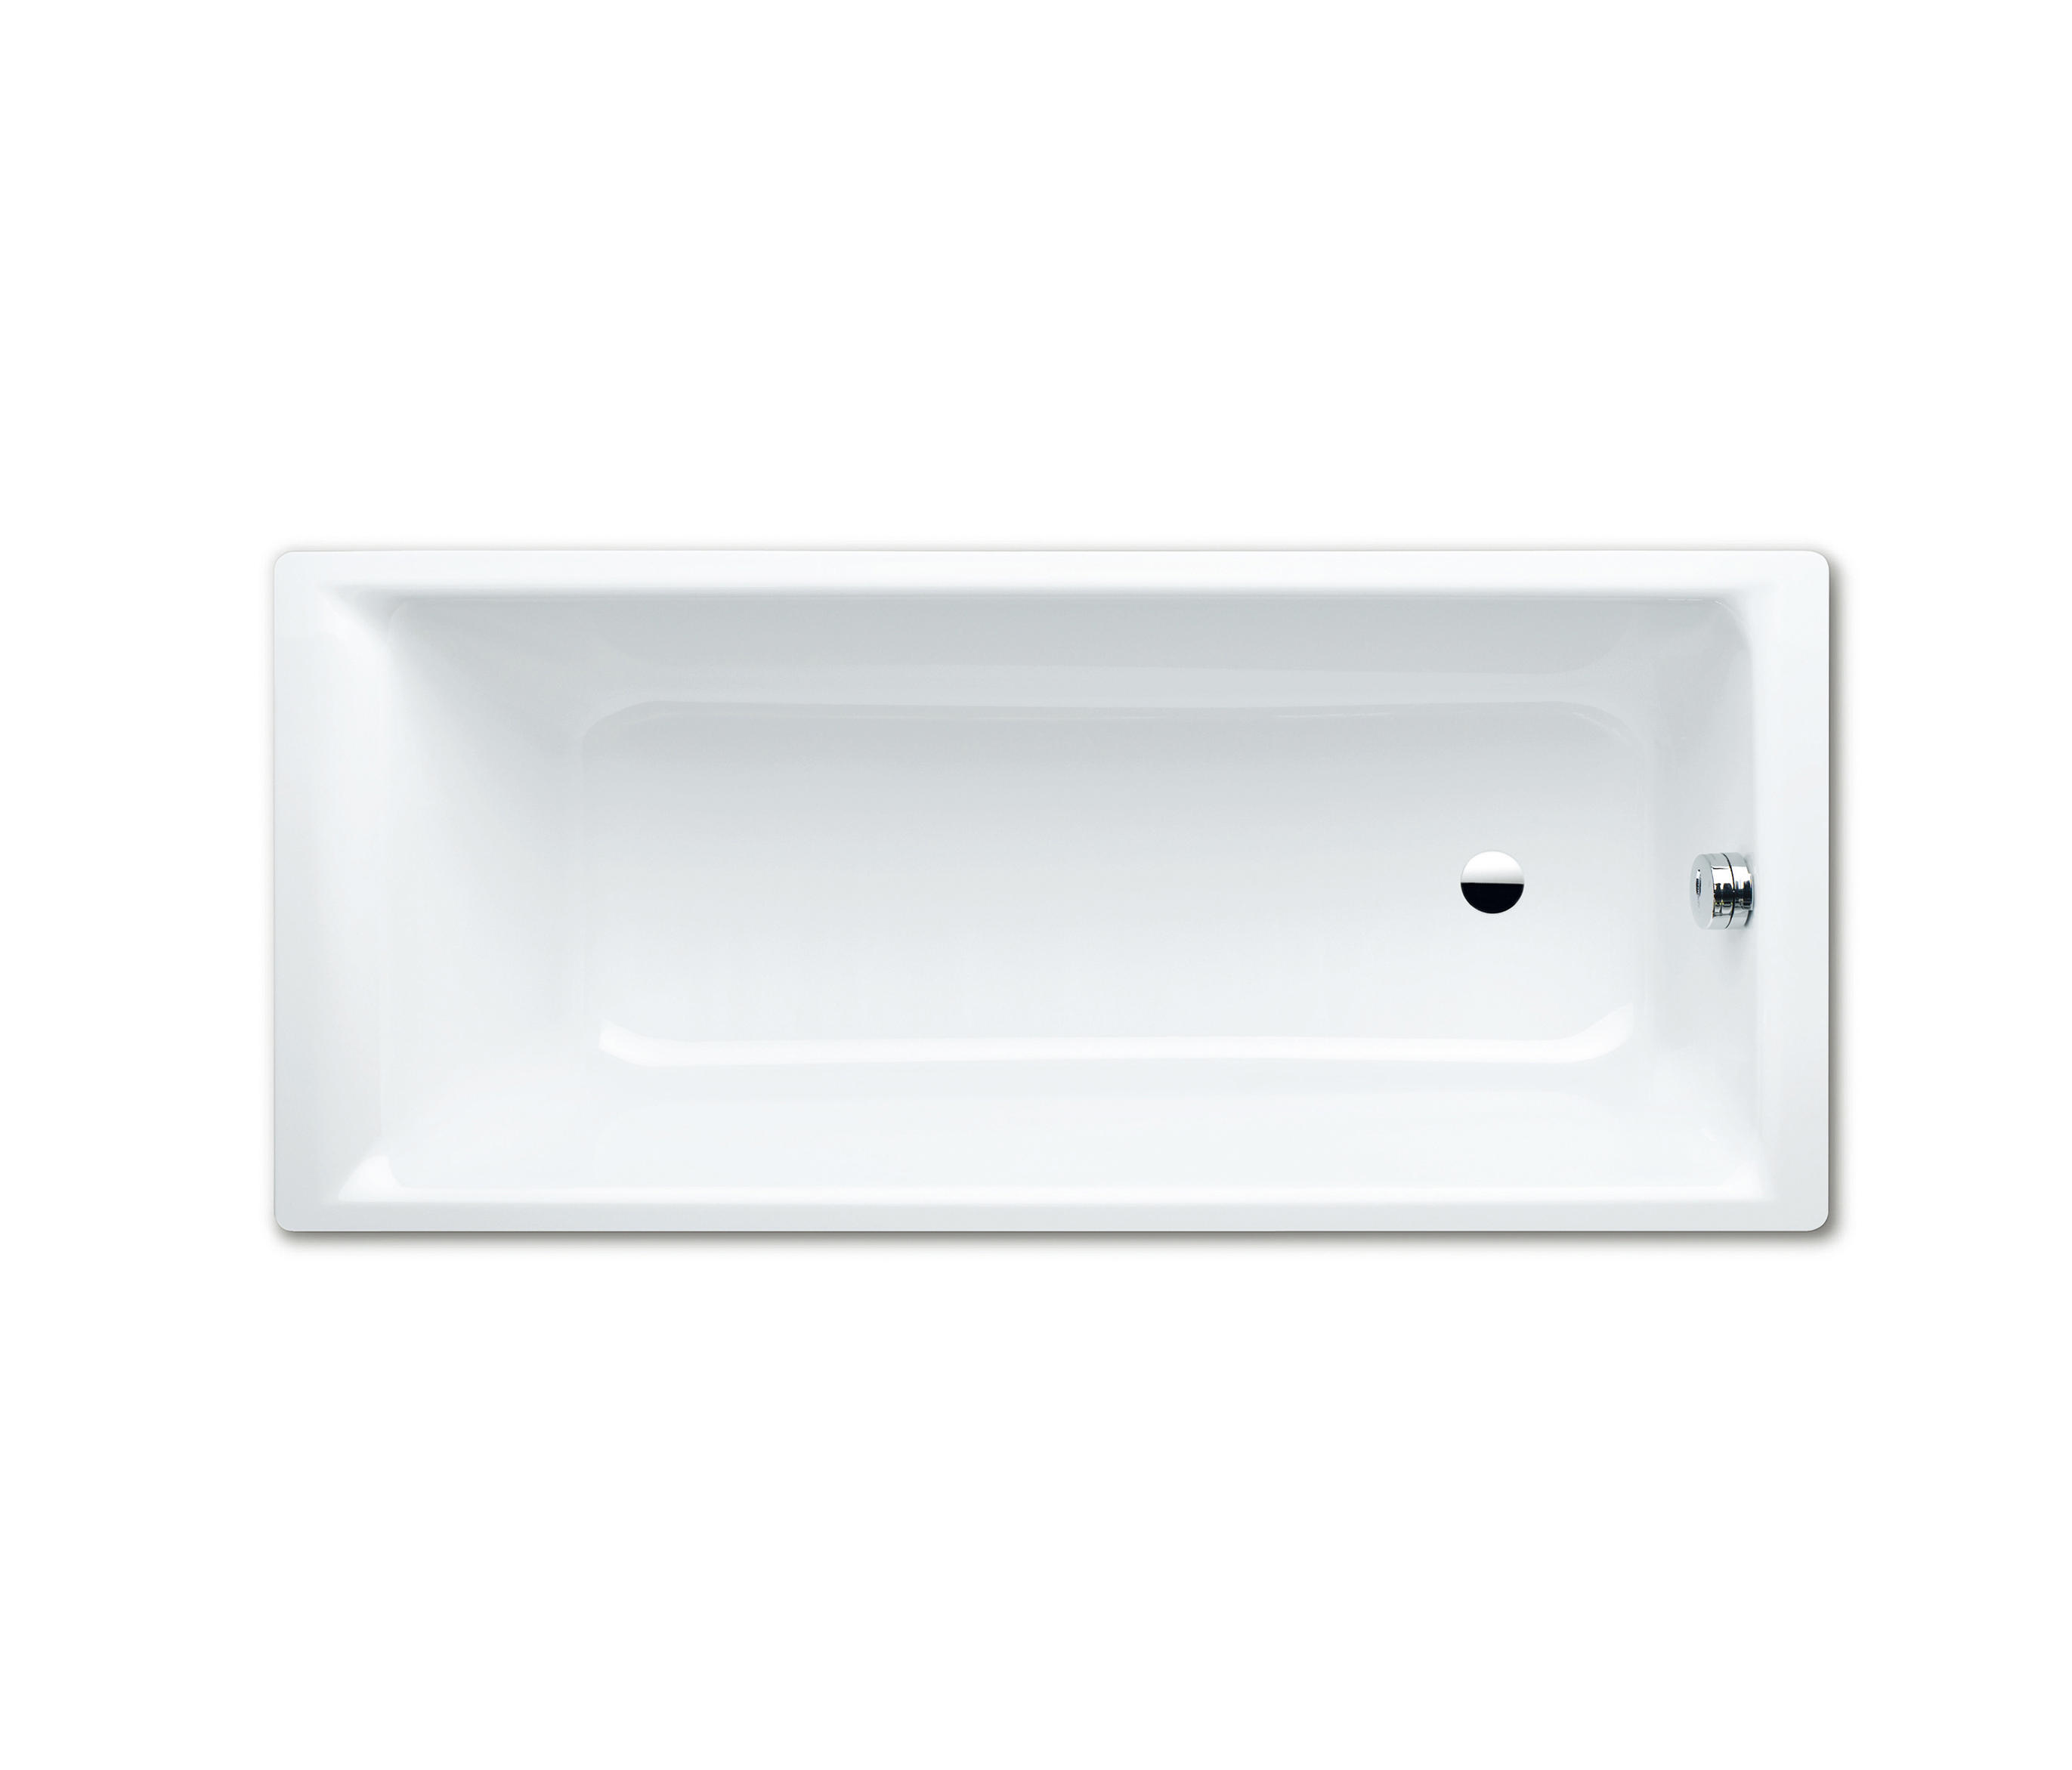 Ordentlich PURO BATHTUB - Built-in bathtubs from Kaldewei | Architonic AO53